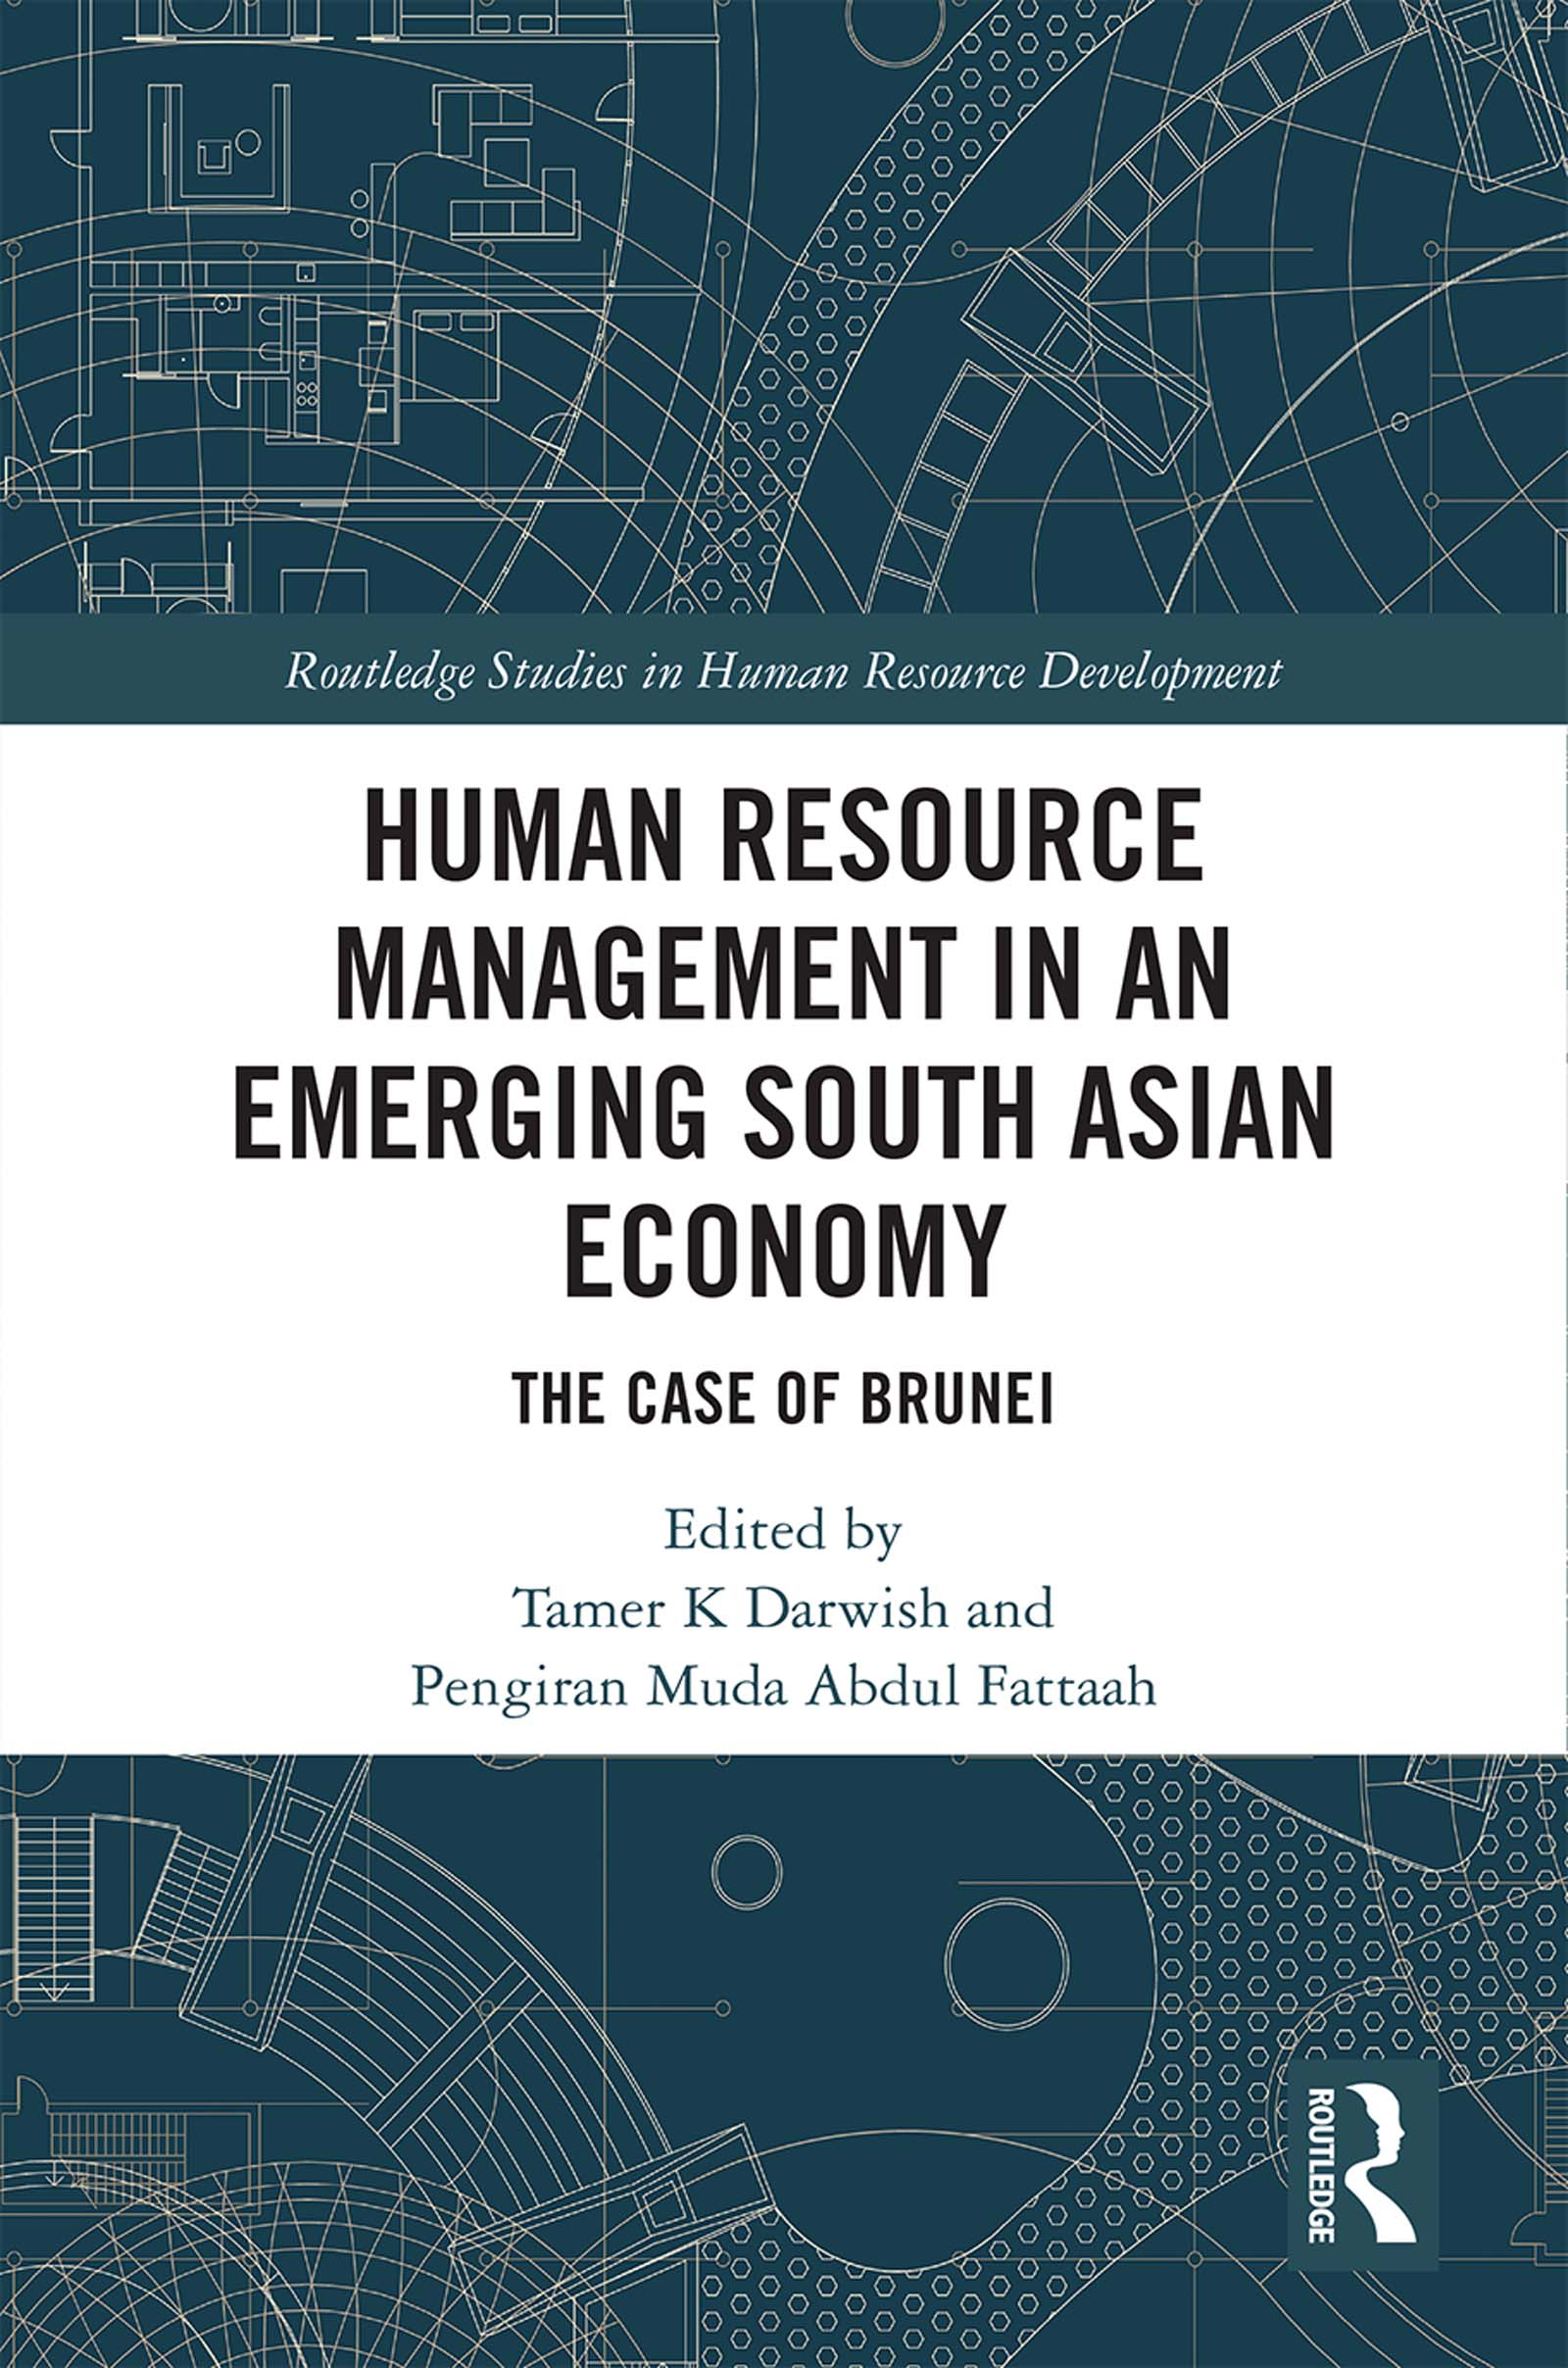 Human Resource Management in an Emerging South Asian Economy: The Case of Brunei book cover